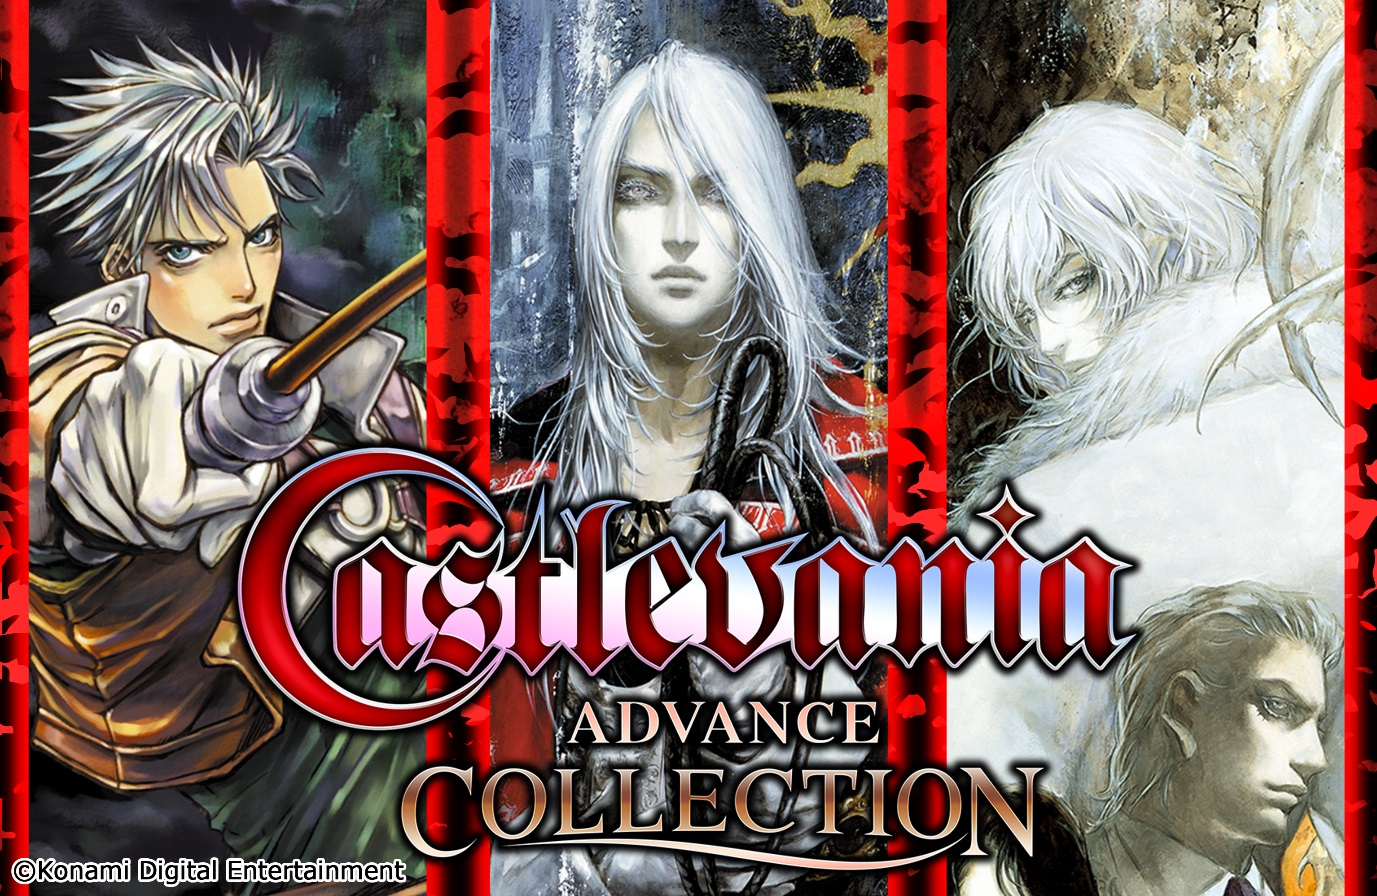 Castlevania Advance Collection Available, GamersRd